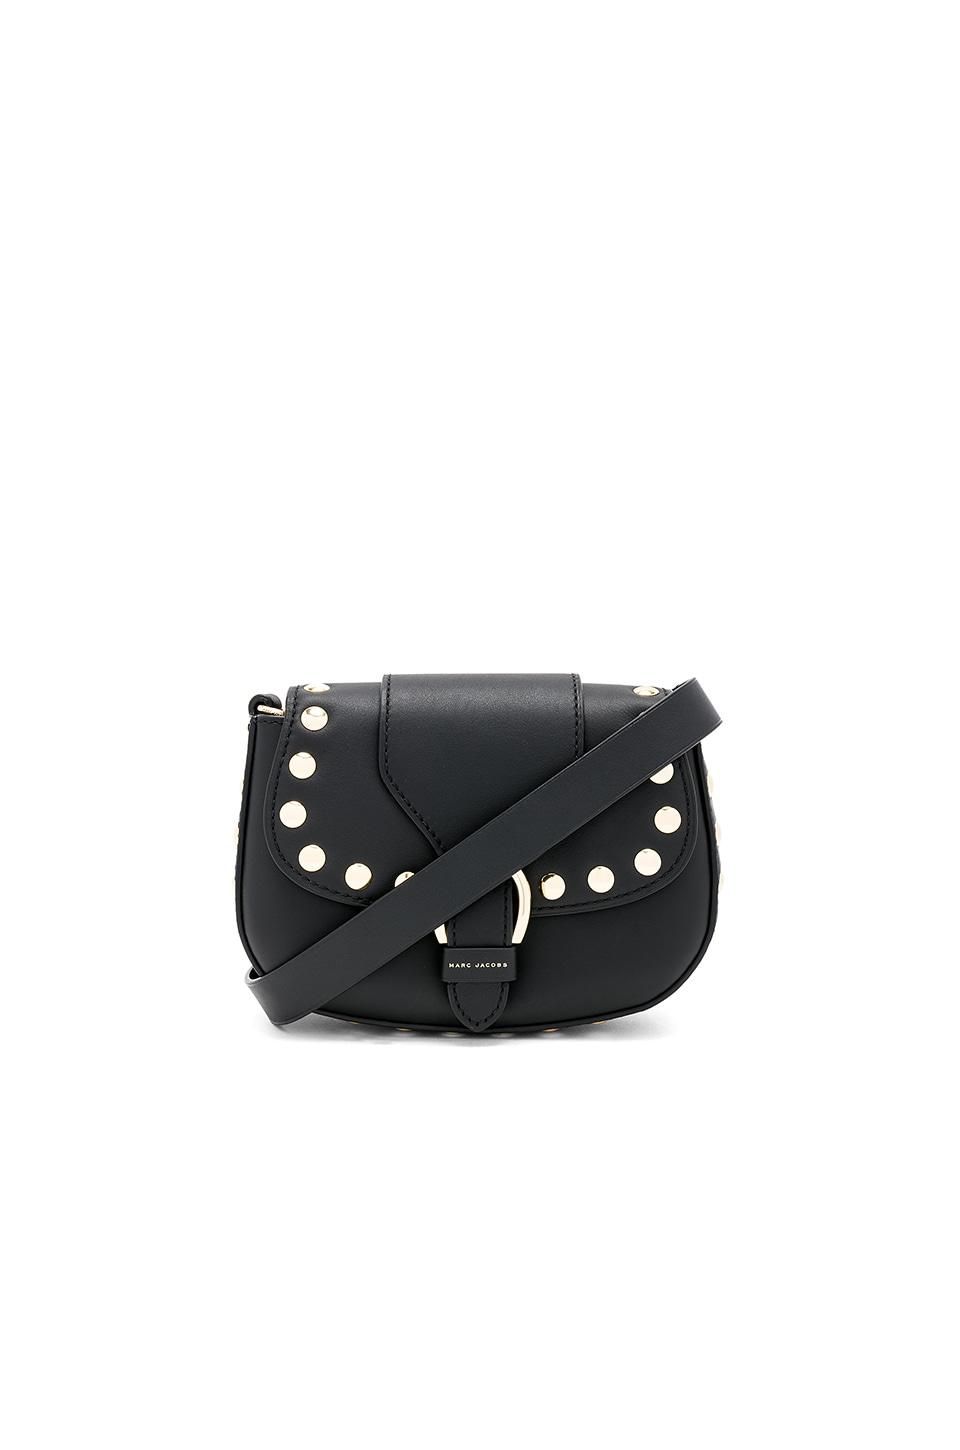 Marc Jacobs Small Studded Navigator Bag in Black